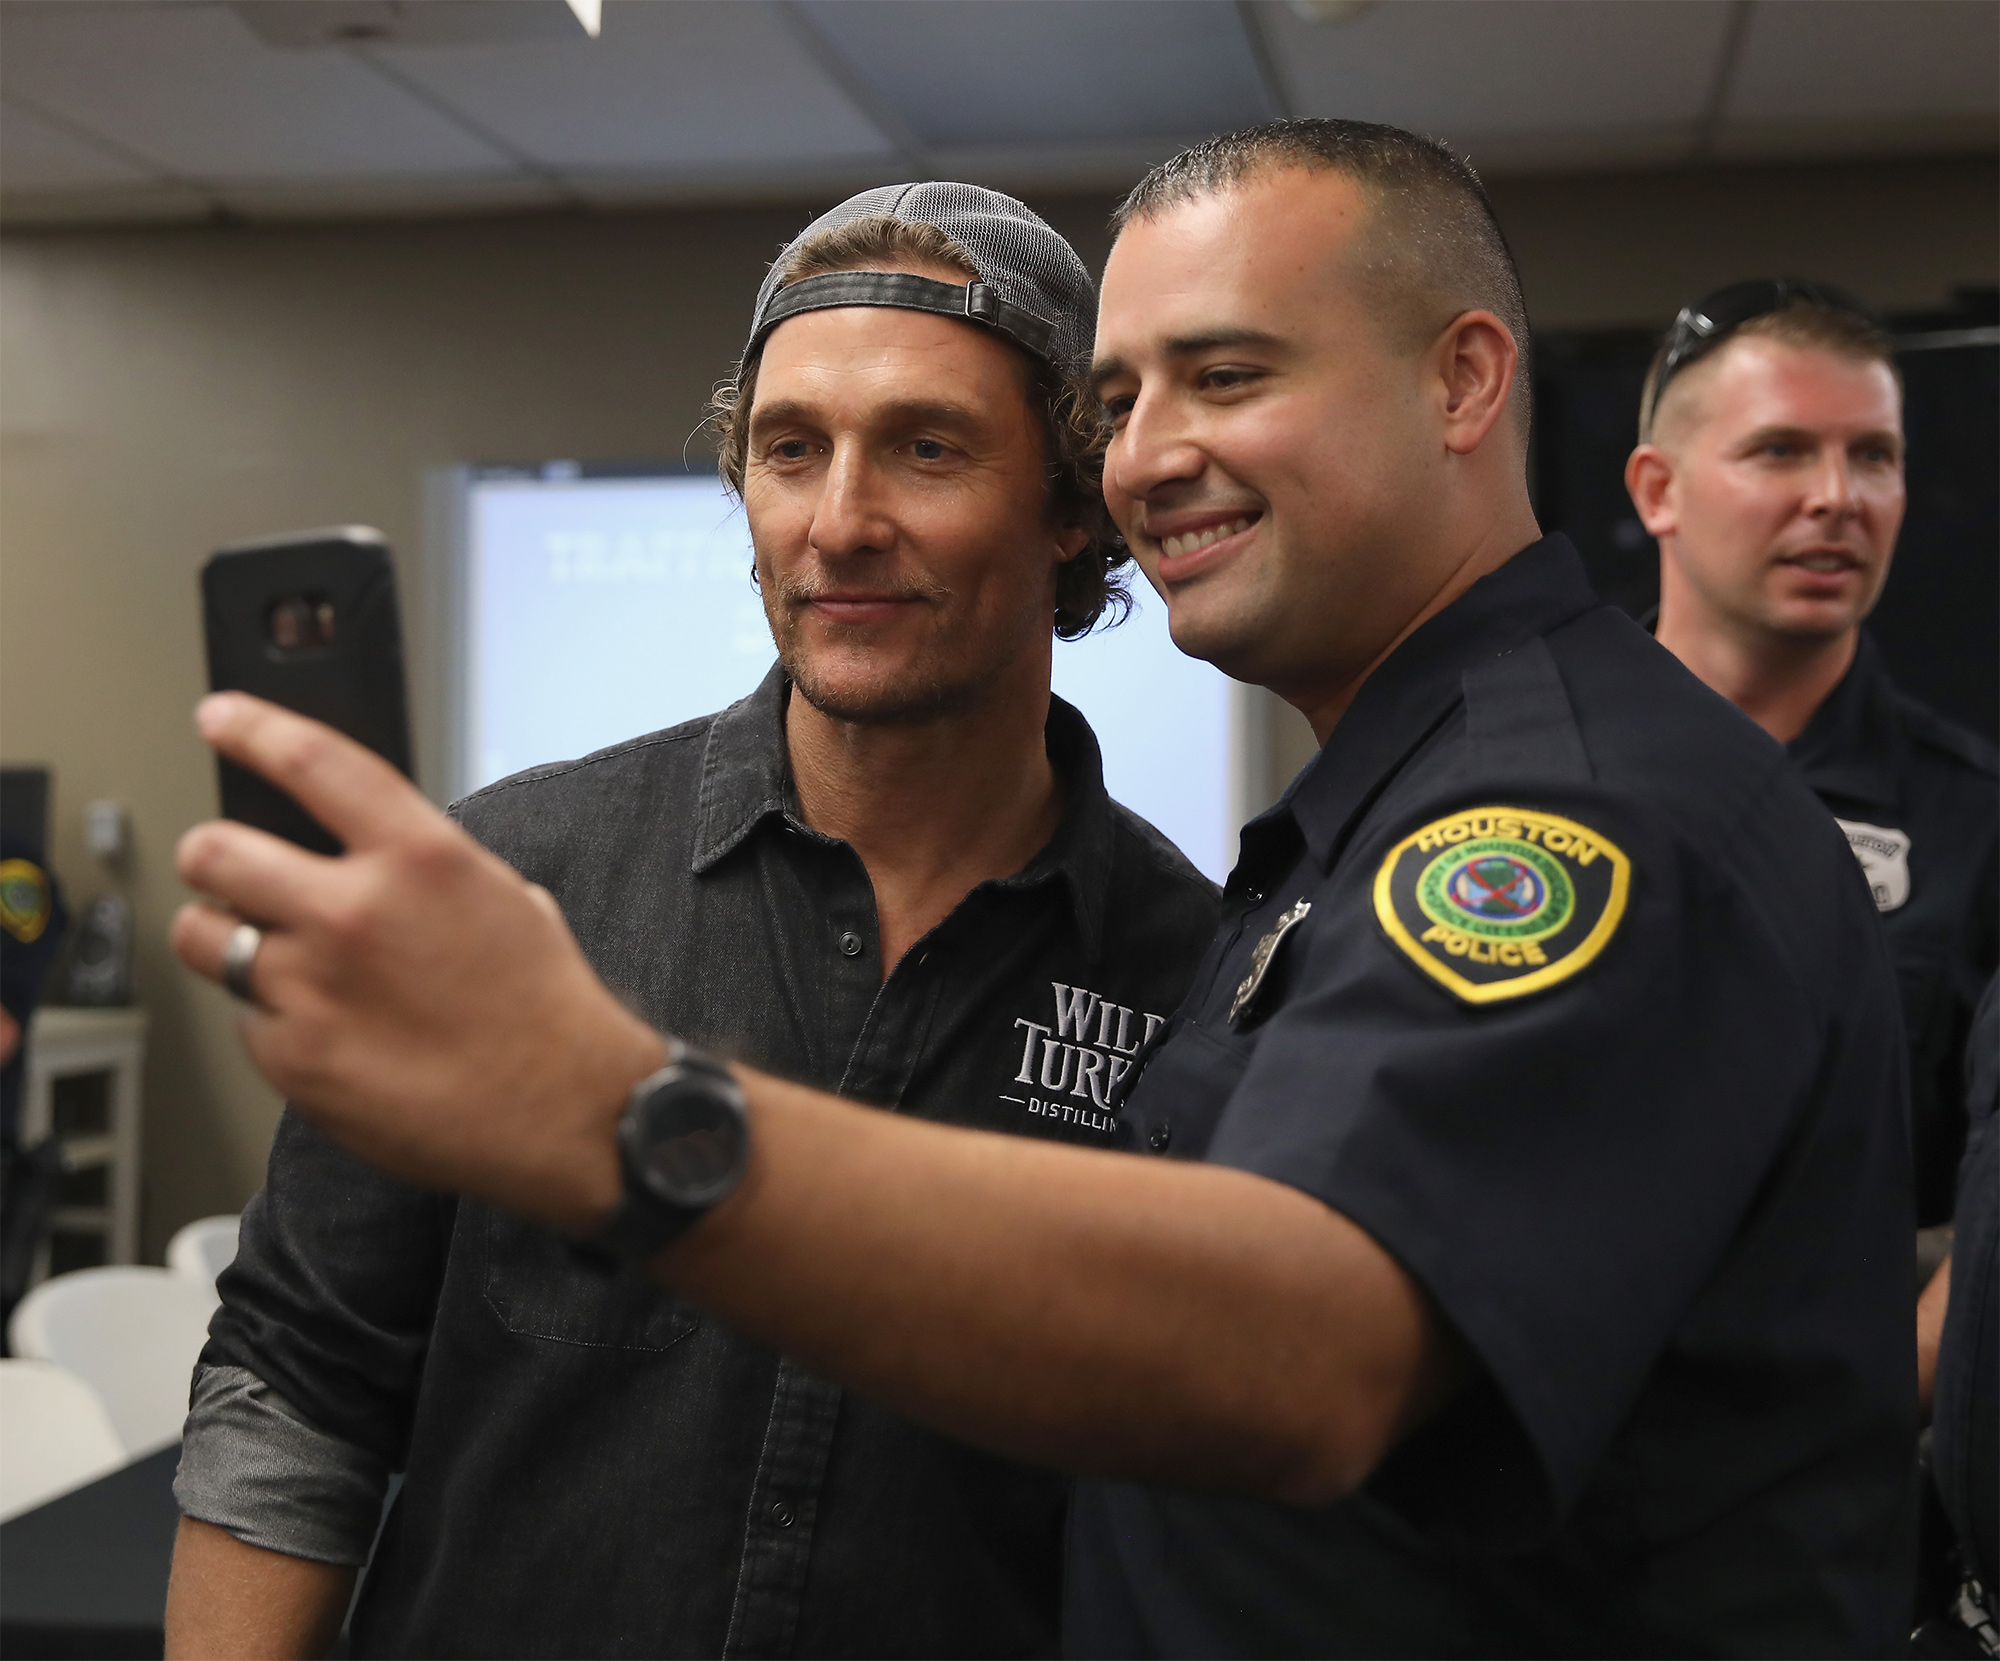 Wild Turkey Gives Back 2018 With Matthew McConaughey